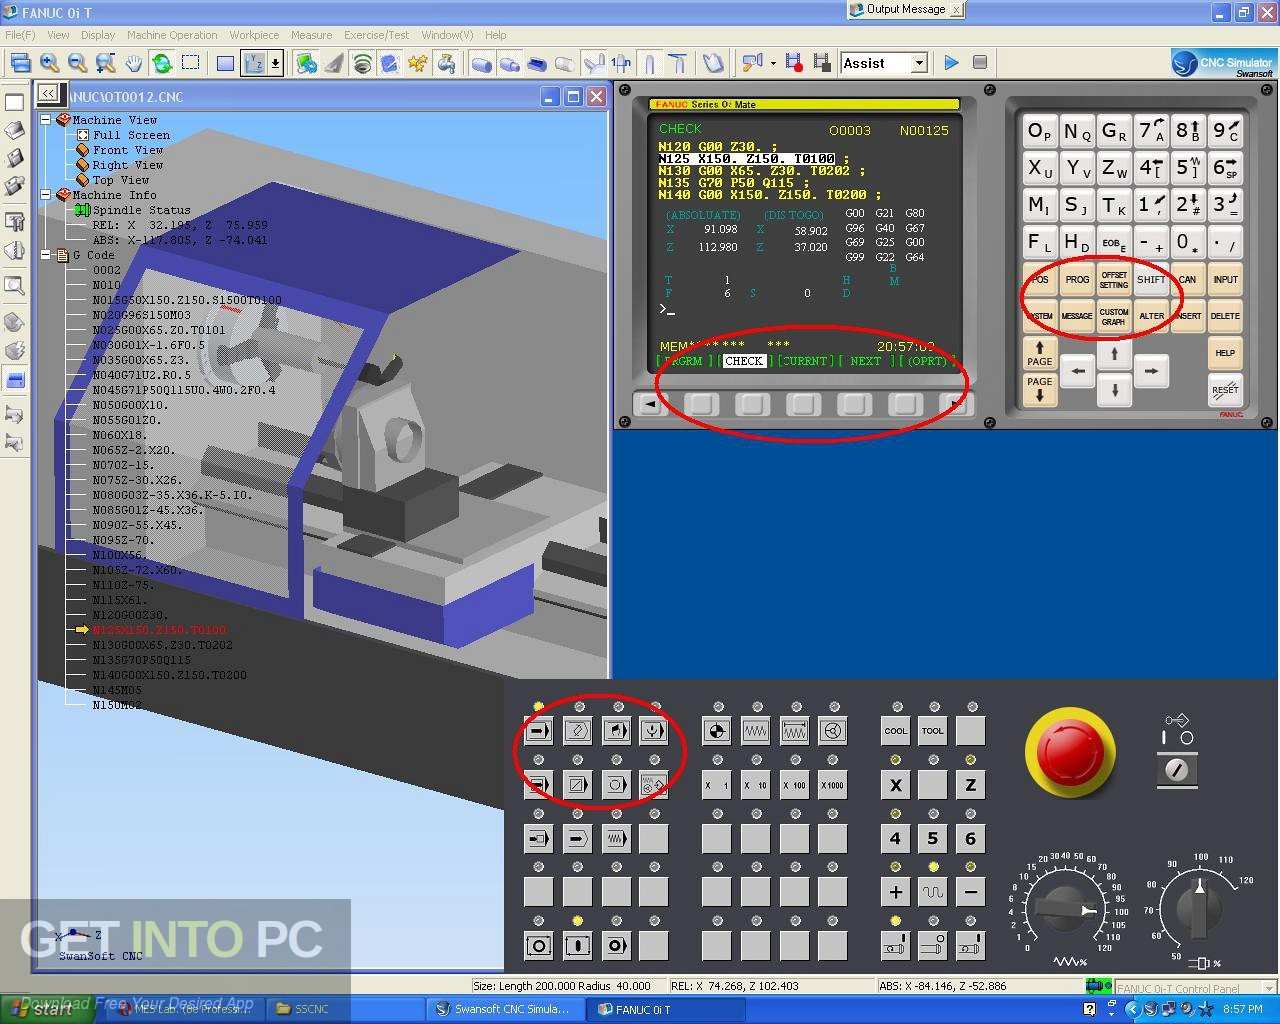 Nanjing Swansoft CNC Simulator 7 2 2 0 Free Download